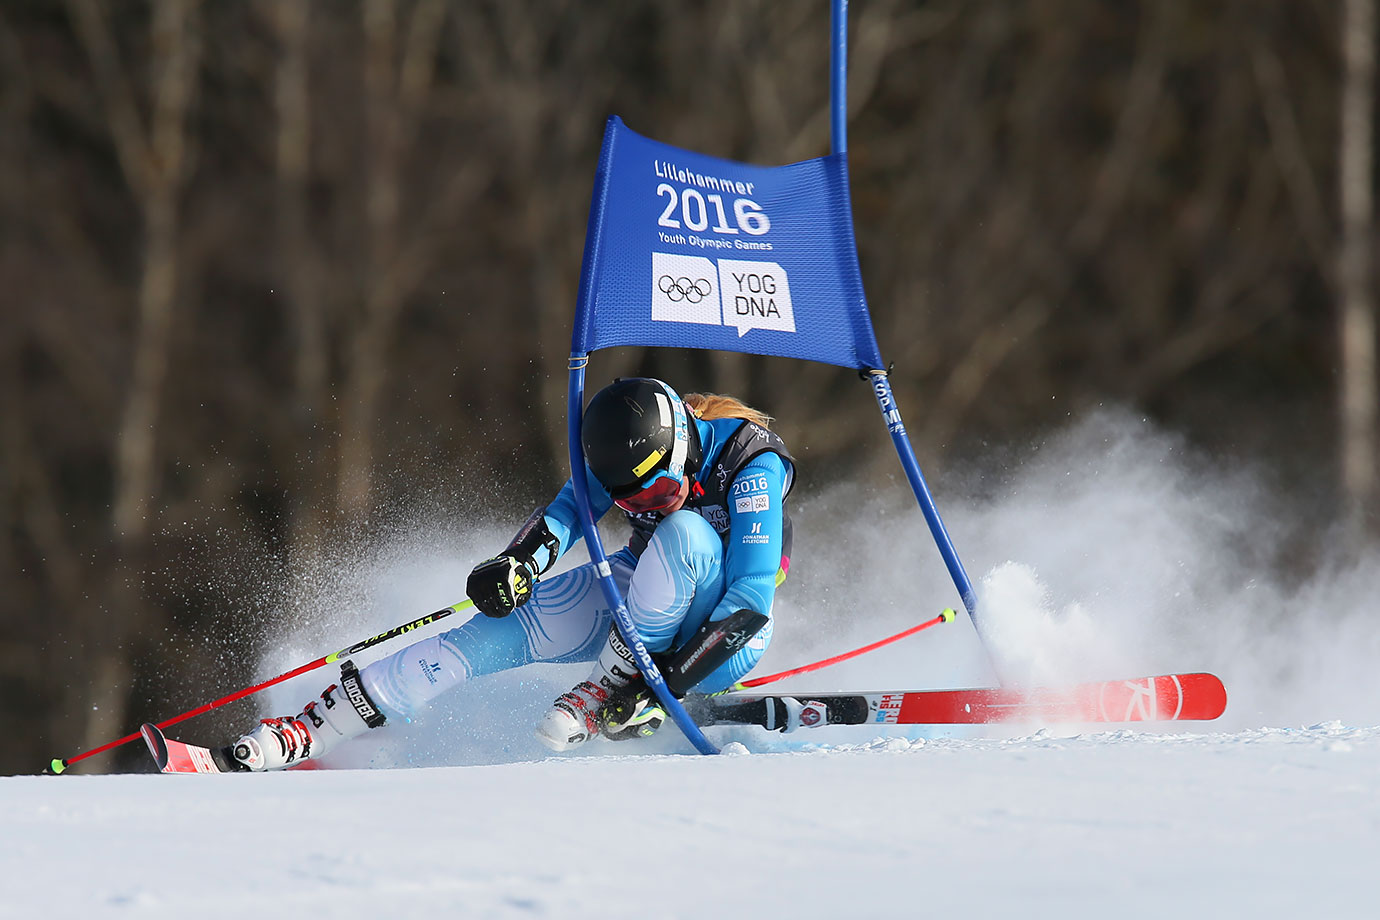 Francesca Baruzzi Farriol (ARG) loses her ski and crashes in the Alpine Skiing Ladies Giant Slalom at the Hafjell Olympic Slope on Feb. 16, 2016 during the Winter Youth Olympic Games in Lillehammer, Norway.